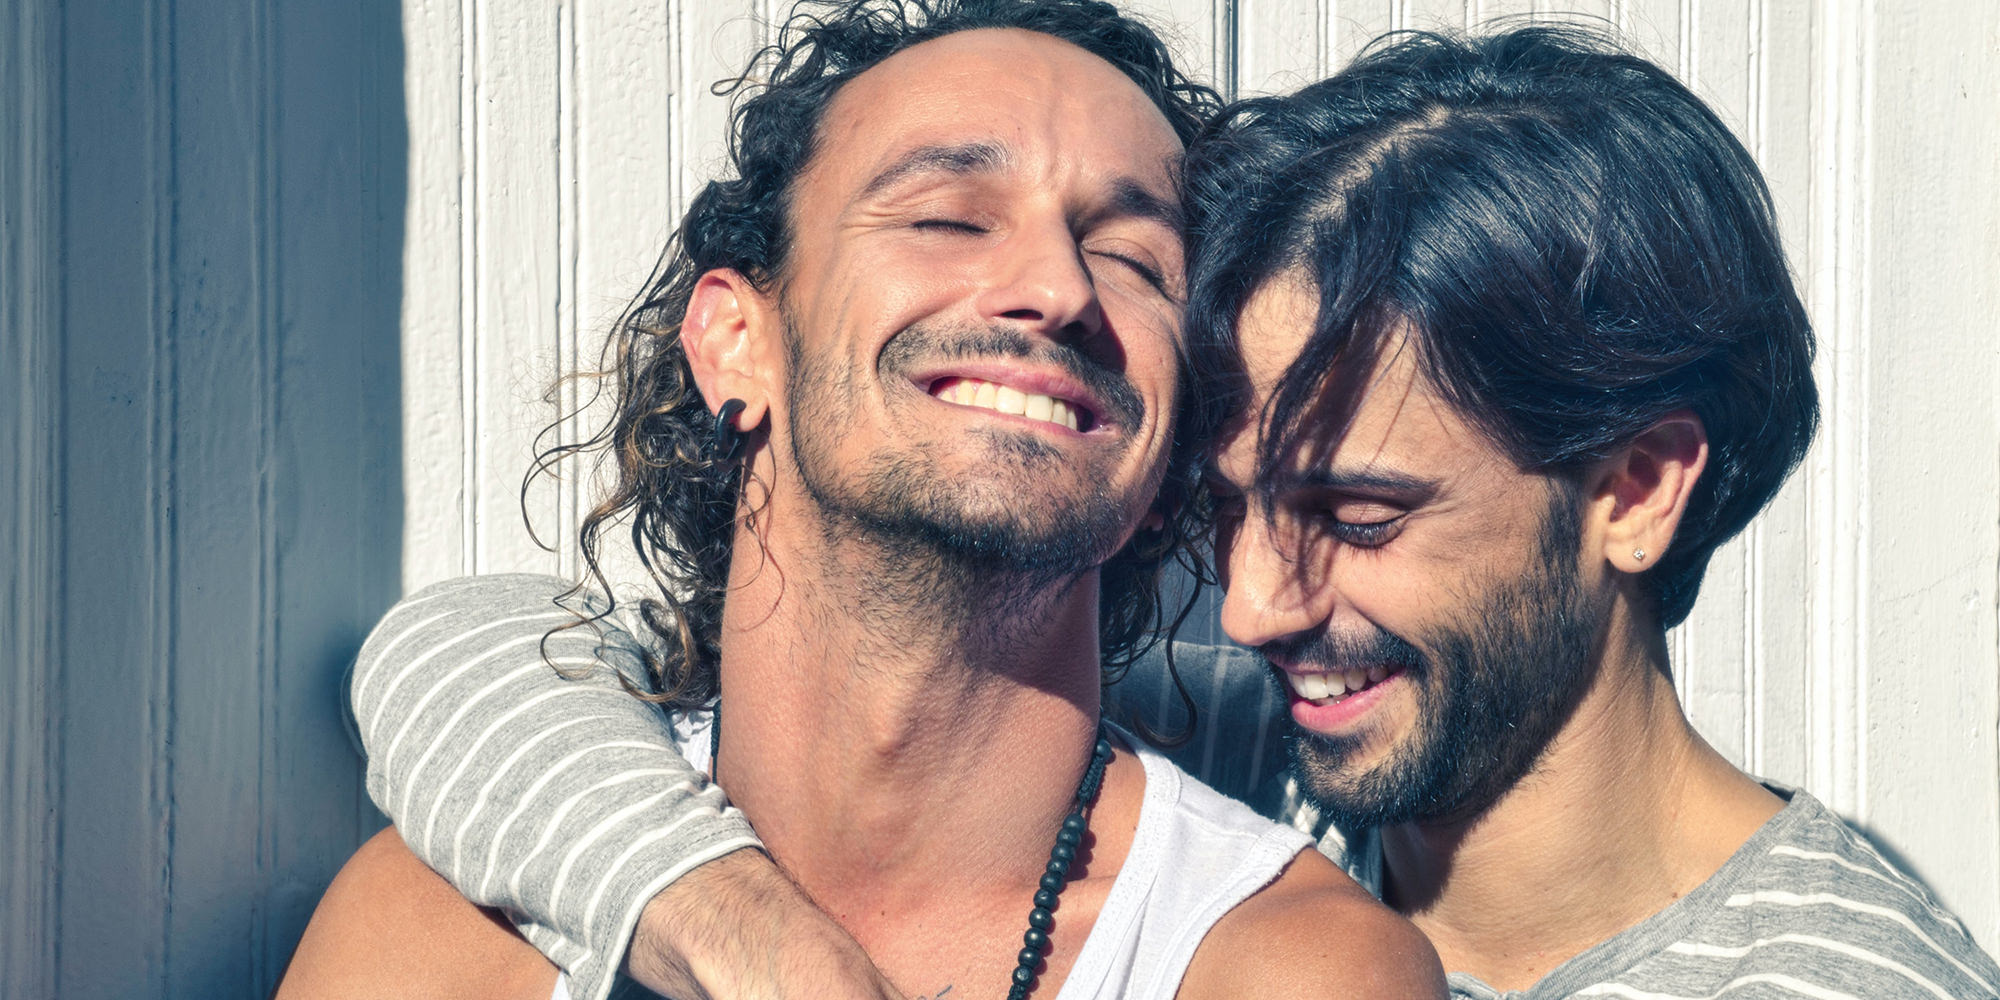 A middle eastern man has his arm around a white man. They look joyful and are sitting in the sun.